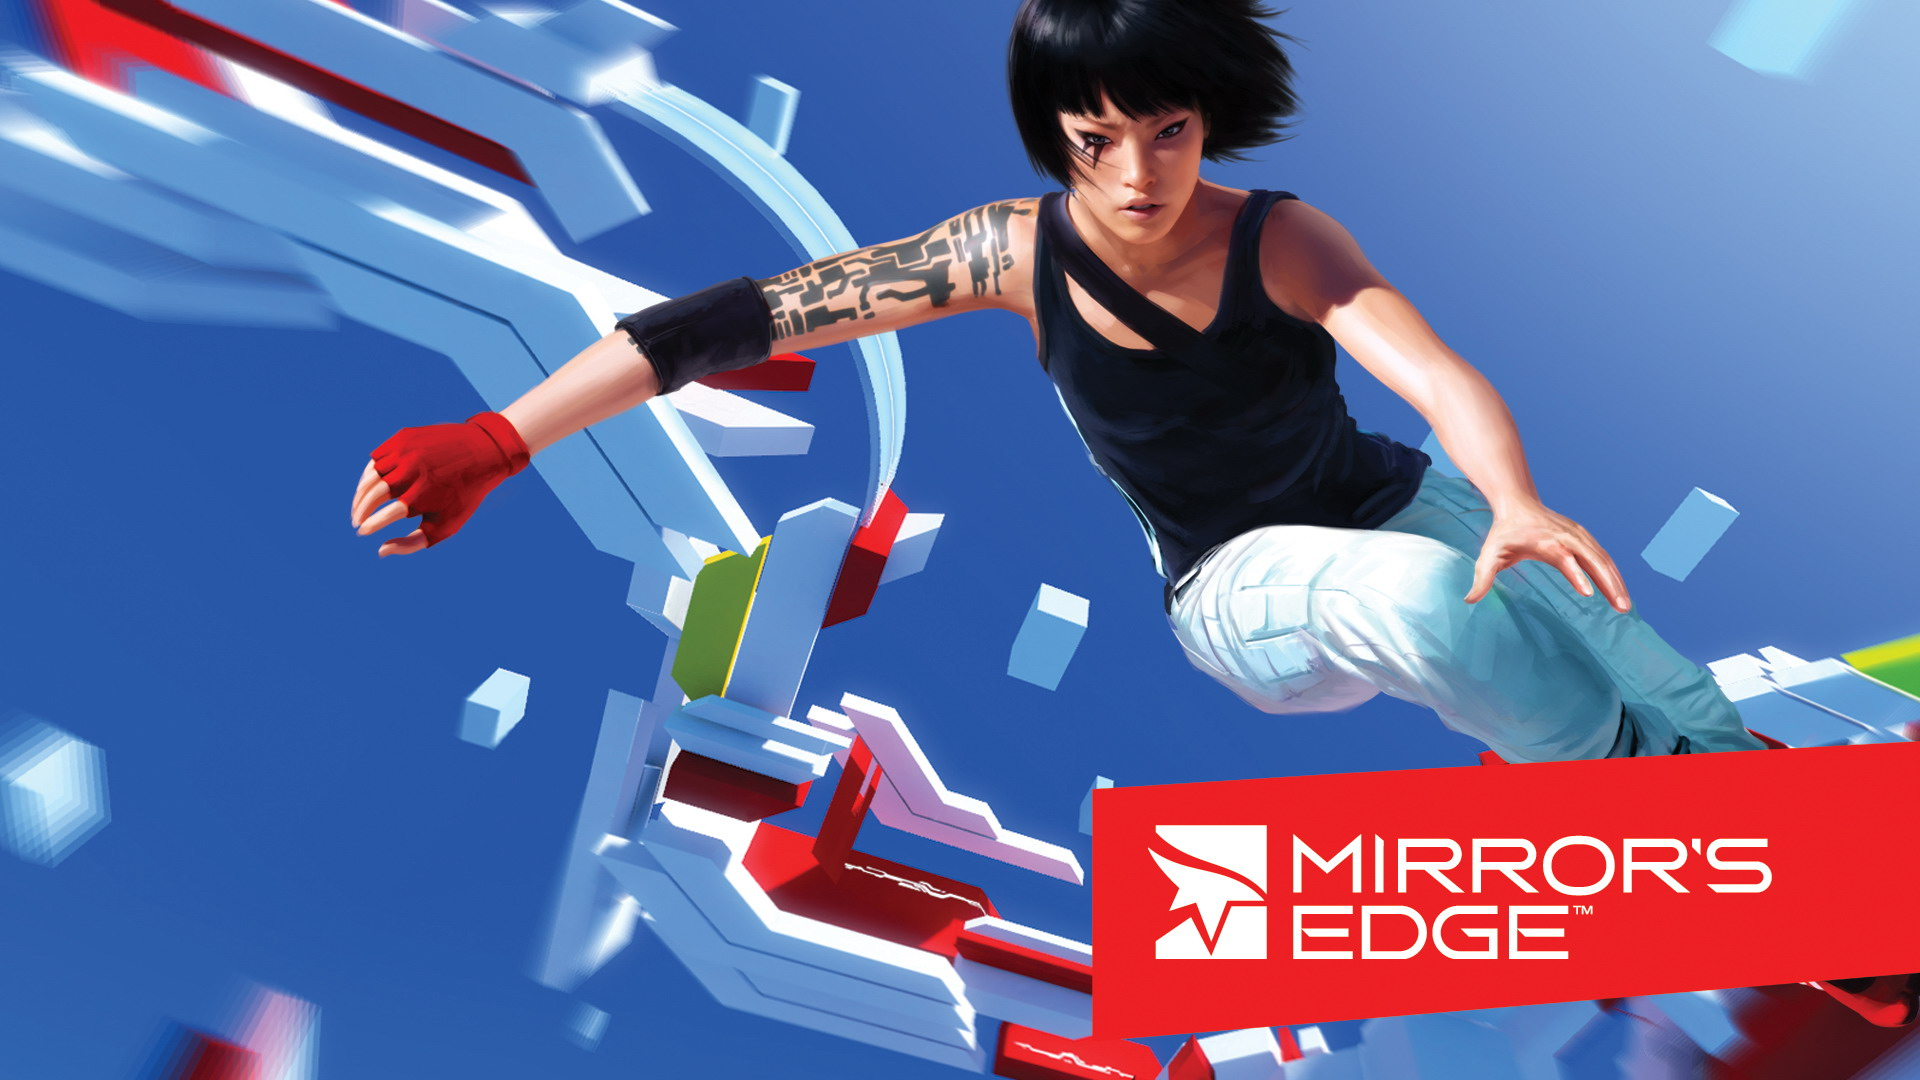 mirrors edge live wallpaper android